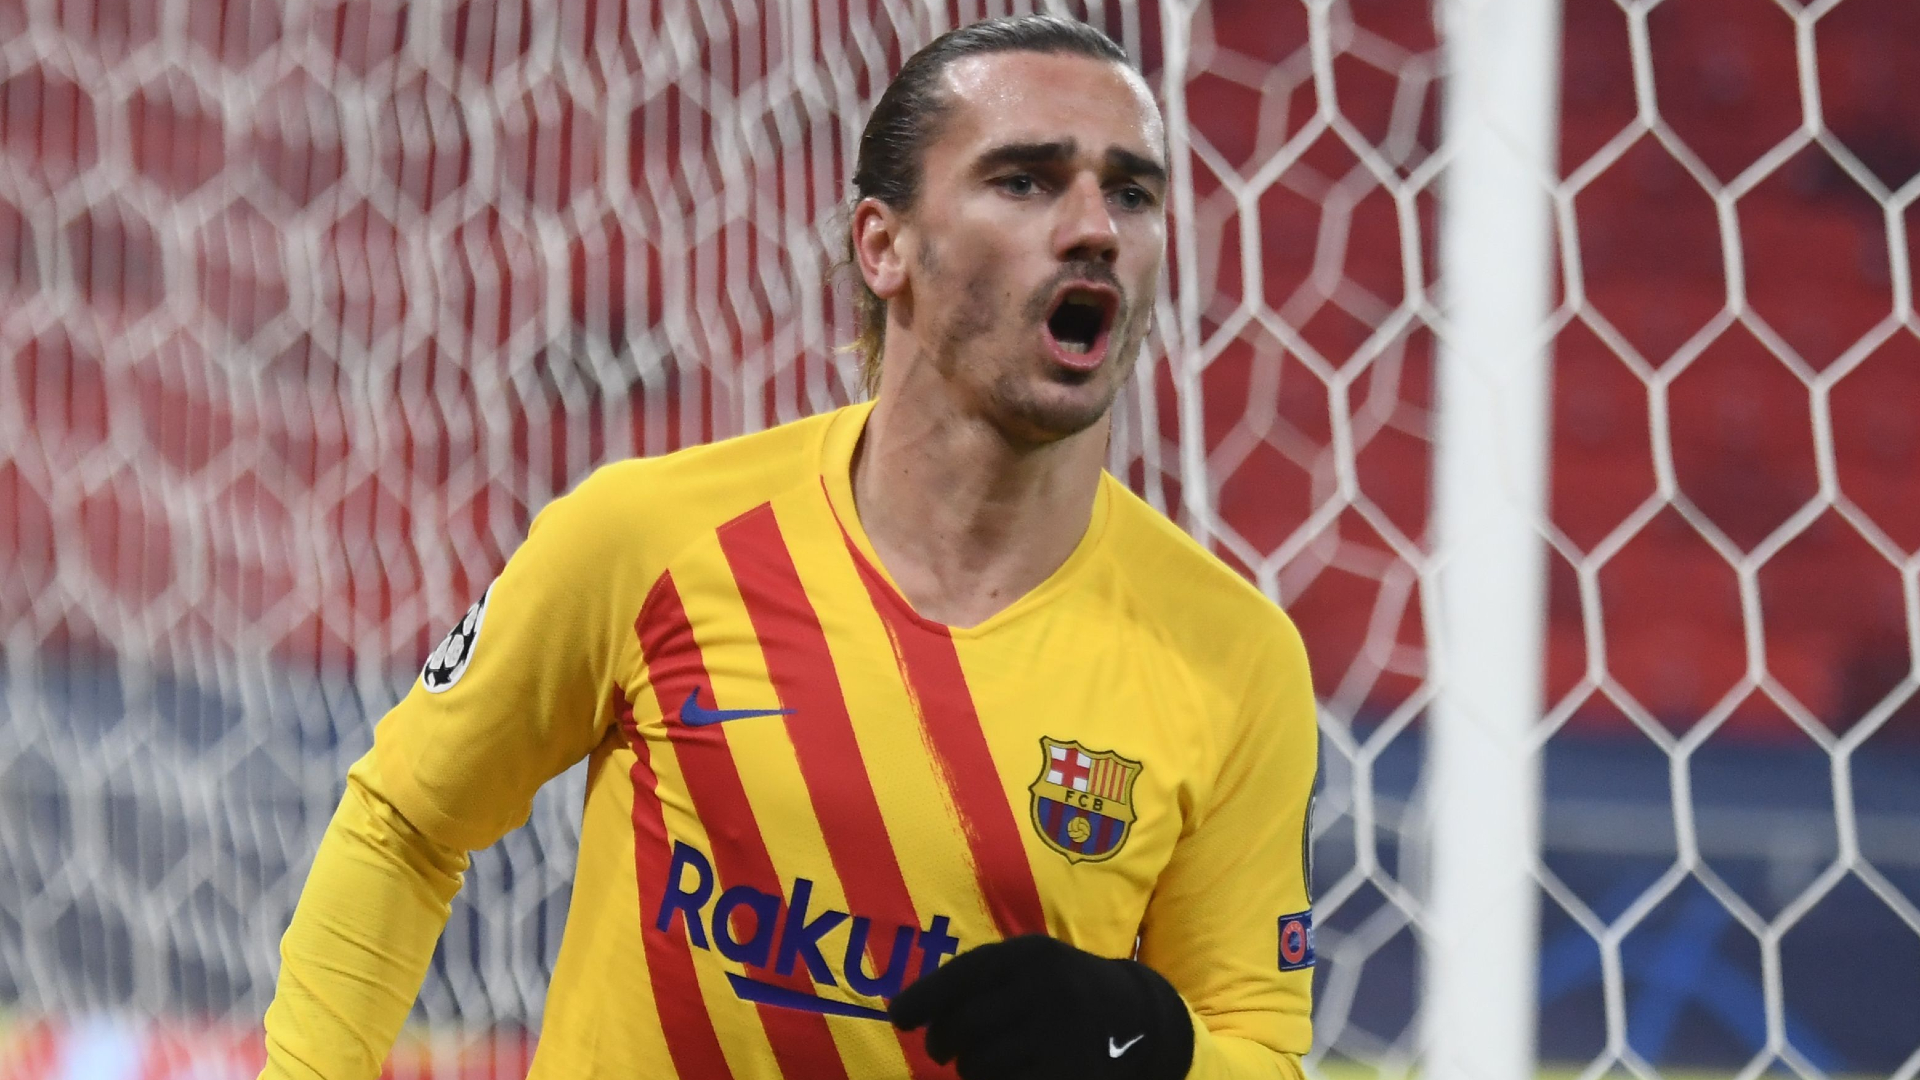 Koeman hoping Griezmann form continues as forward's confidence grows